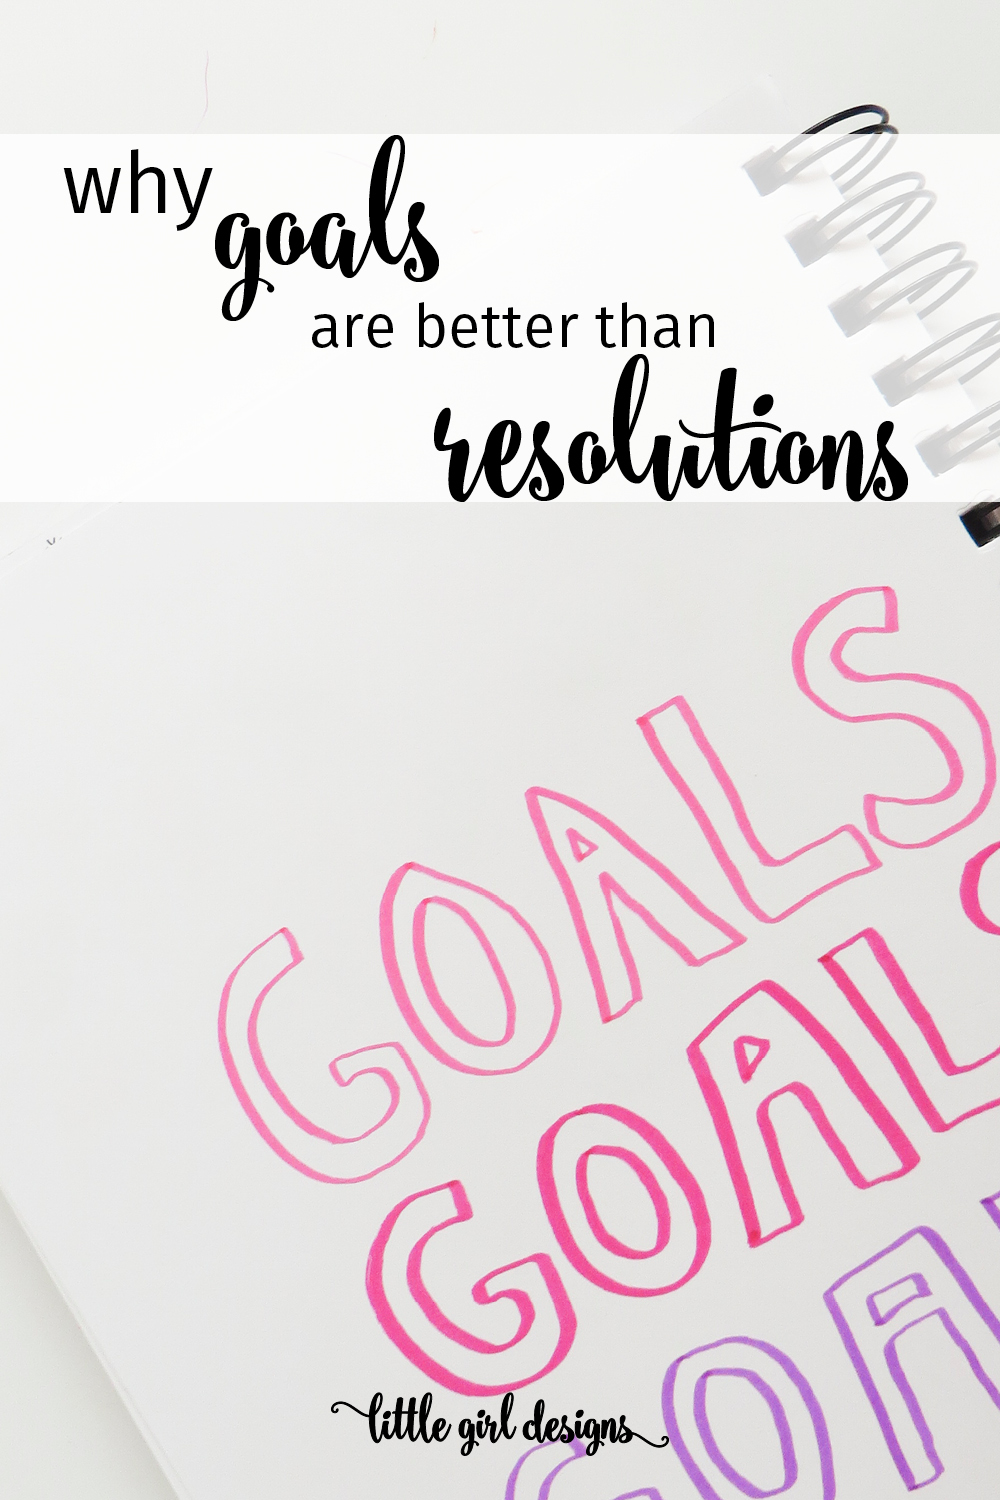 How to Make Goals Instead of Resolutions for the new year! You'll be much happier when you make doable (and trackable) goals rather than just wishing for change. Here are some tips.